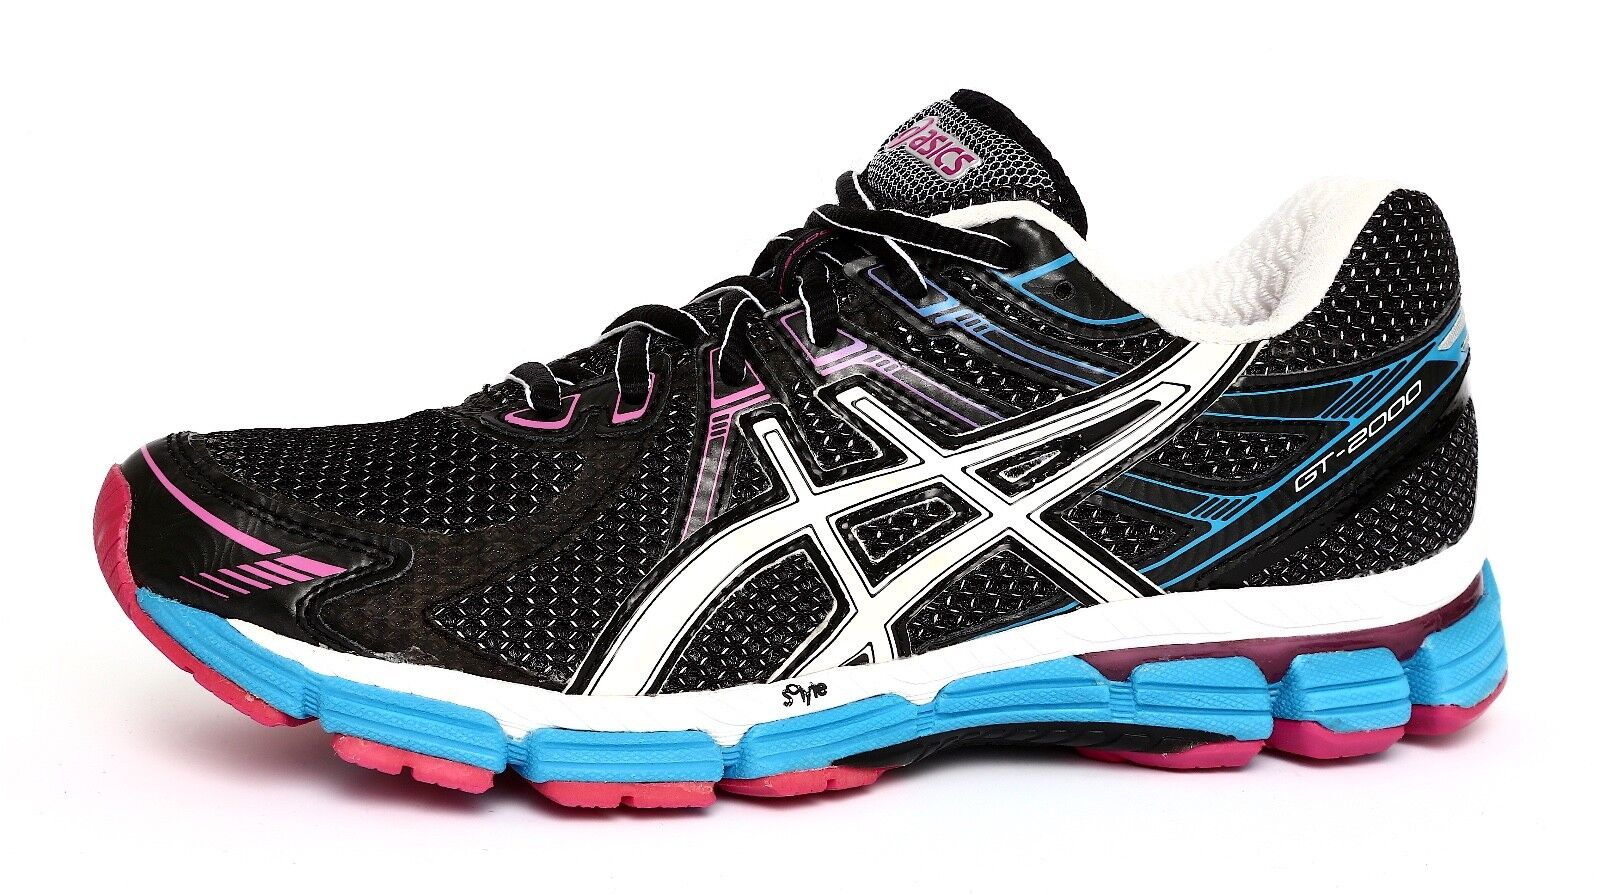 Asics GT-2000 Women's Gel Guidance Line Multi Color Running Shoe Sz 7 1784 Seasonal price cuts, discount benefits